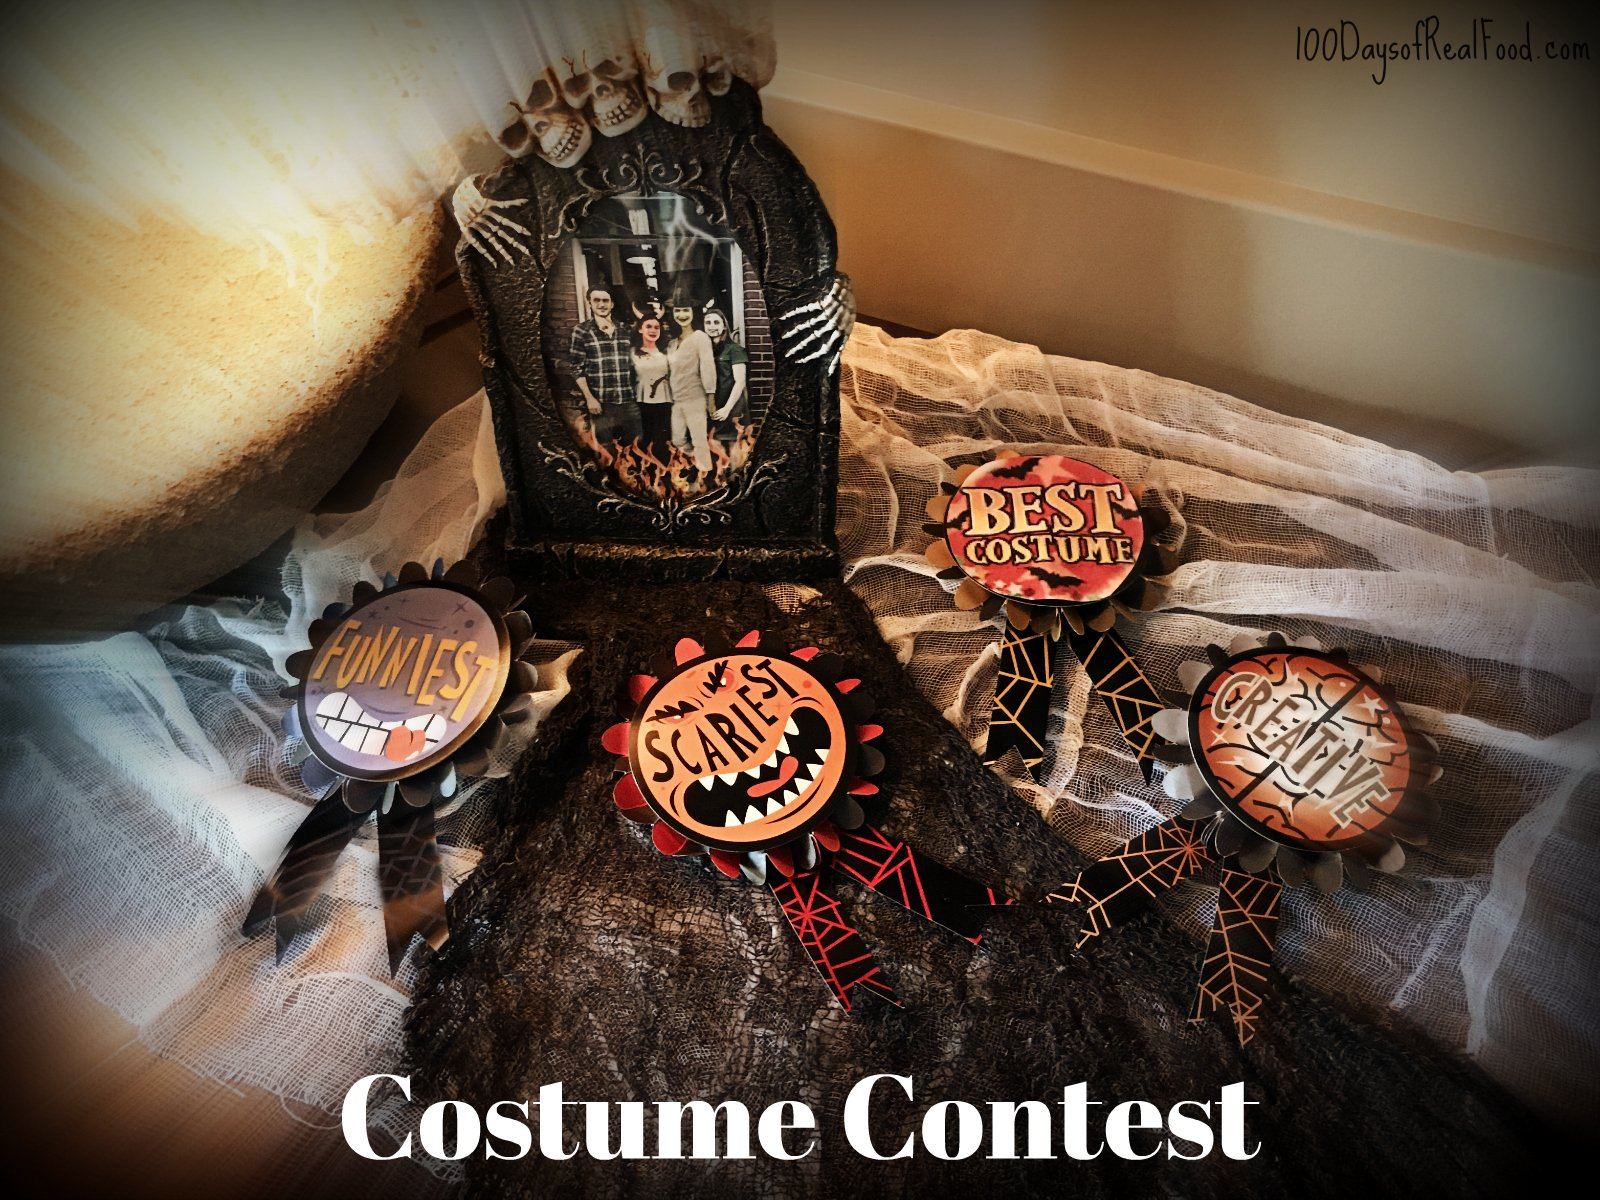 Costume Contest award ribbons